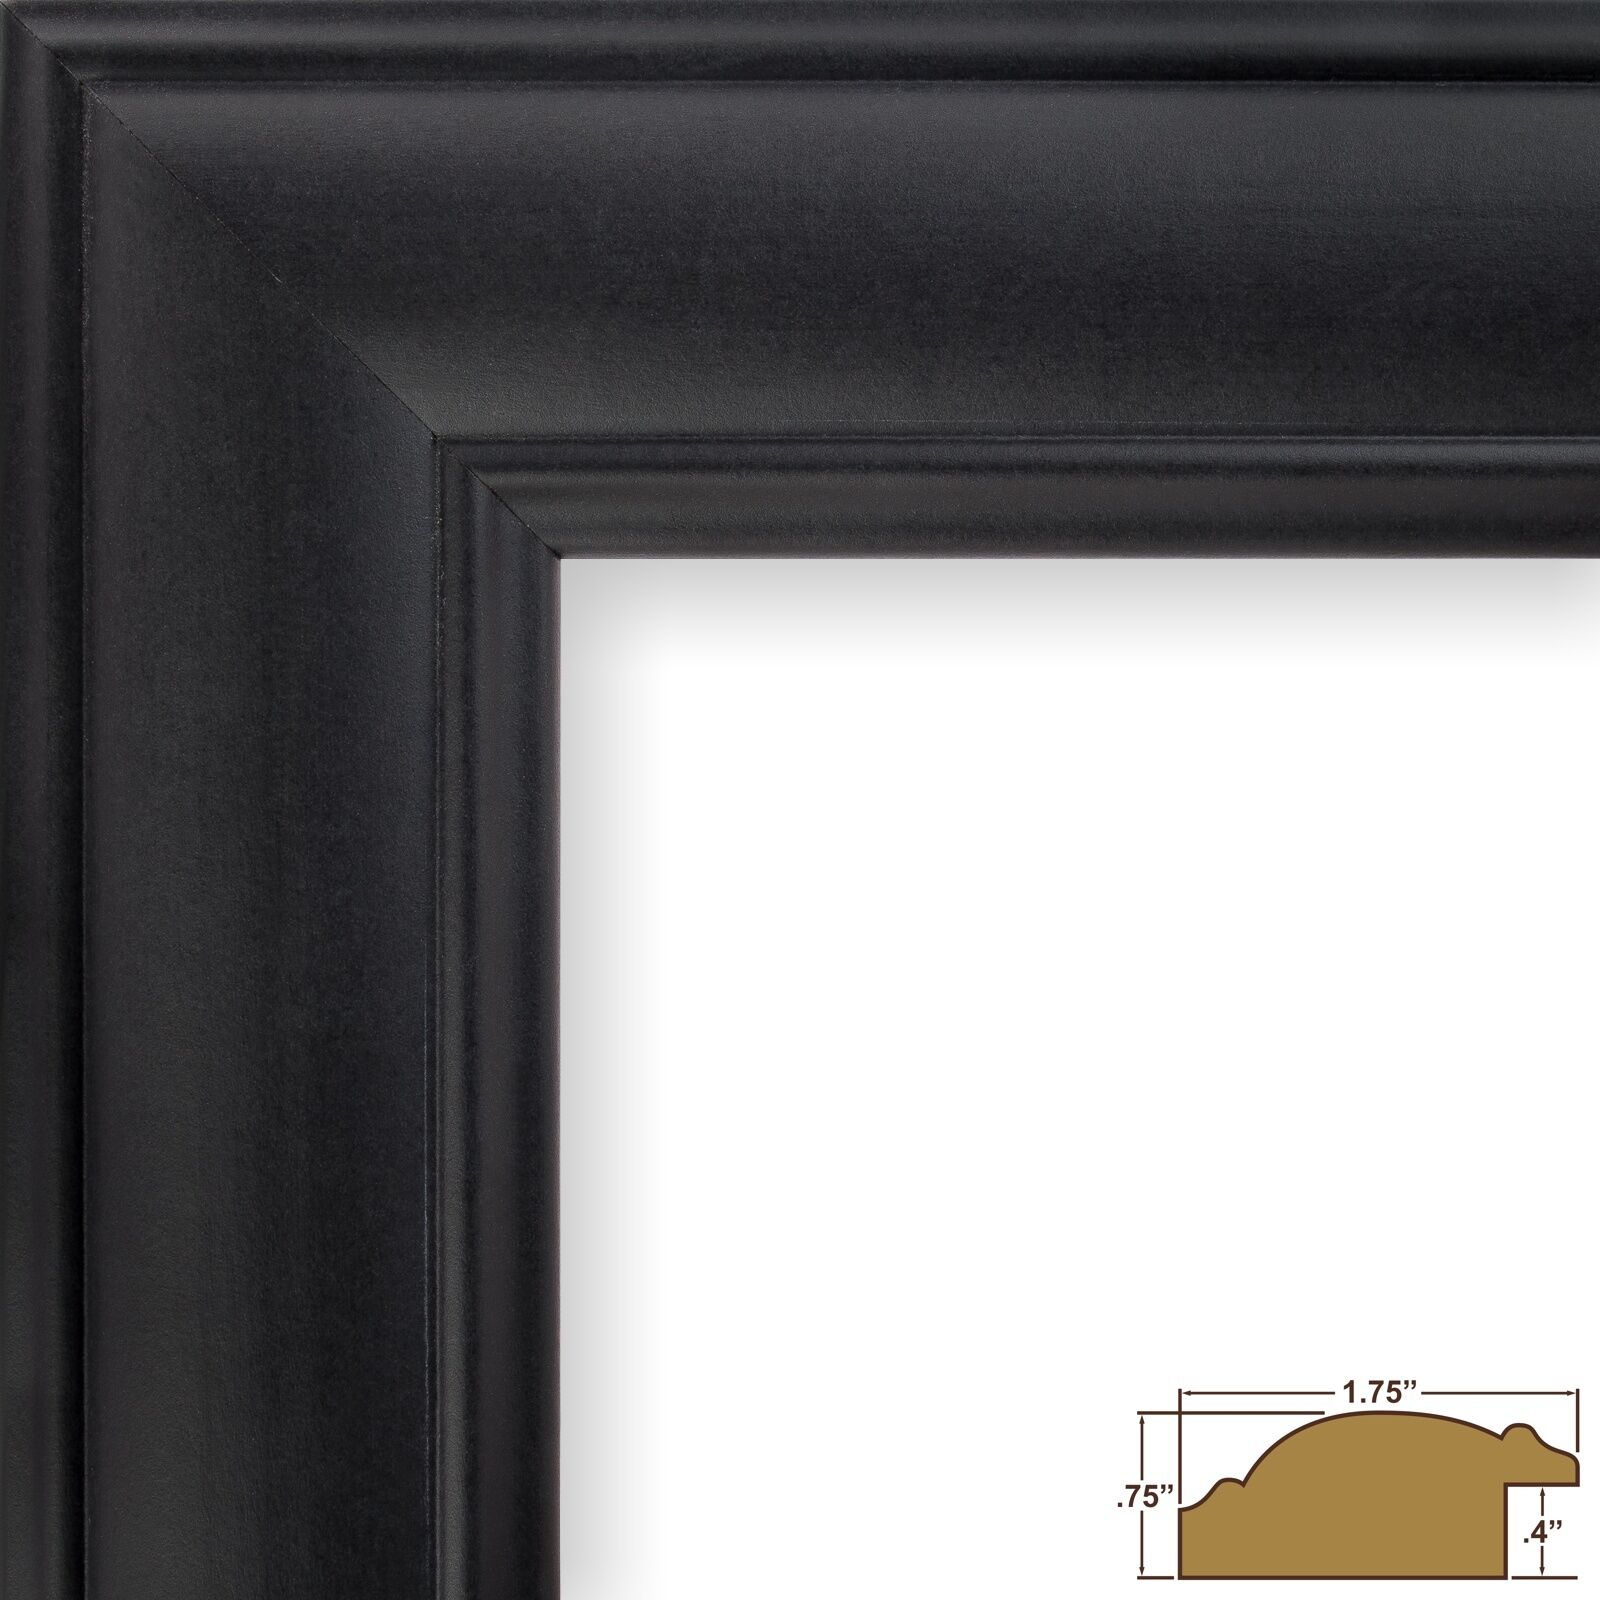 Craig frames dakota 175 satin black picture frame 1 single picture 1 of 10 jeuxipadfo Images